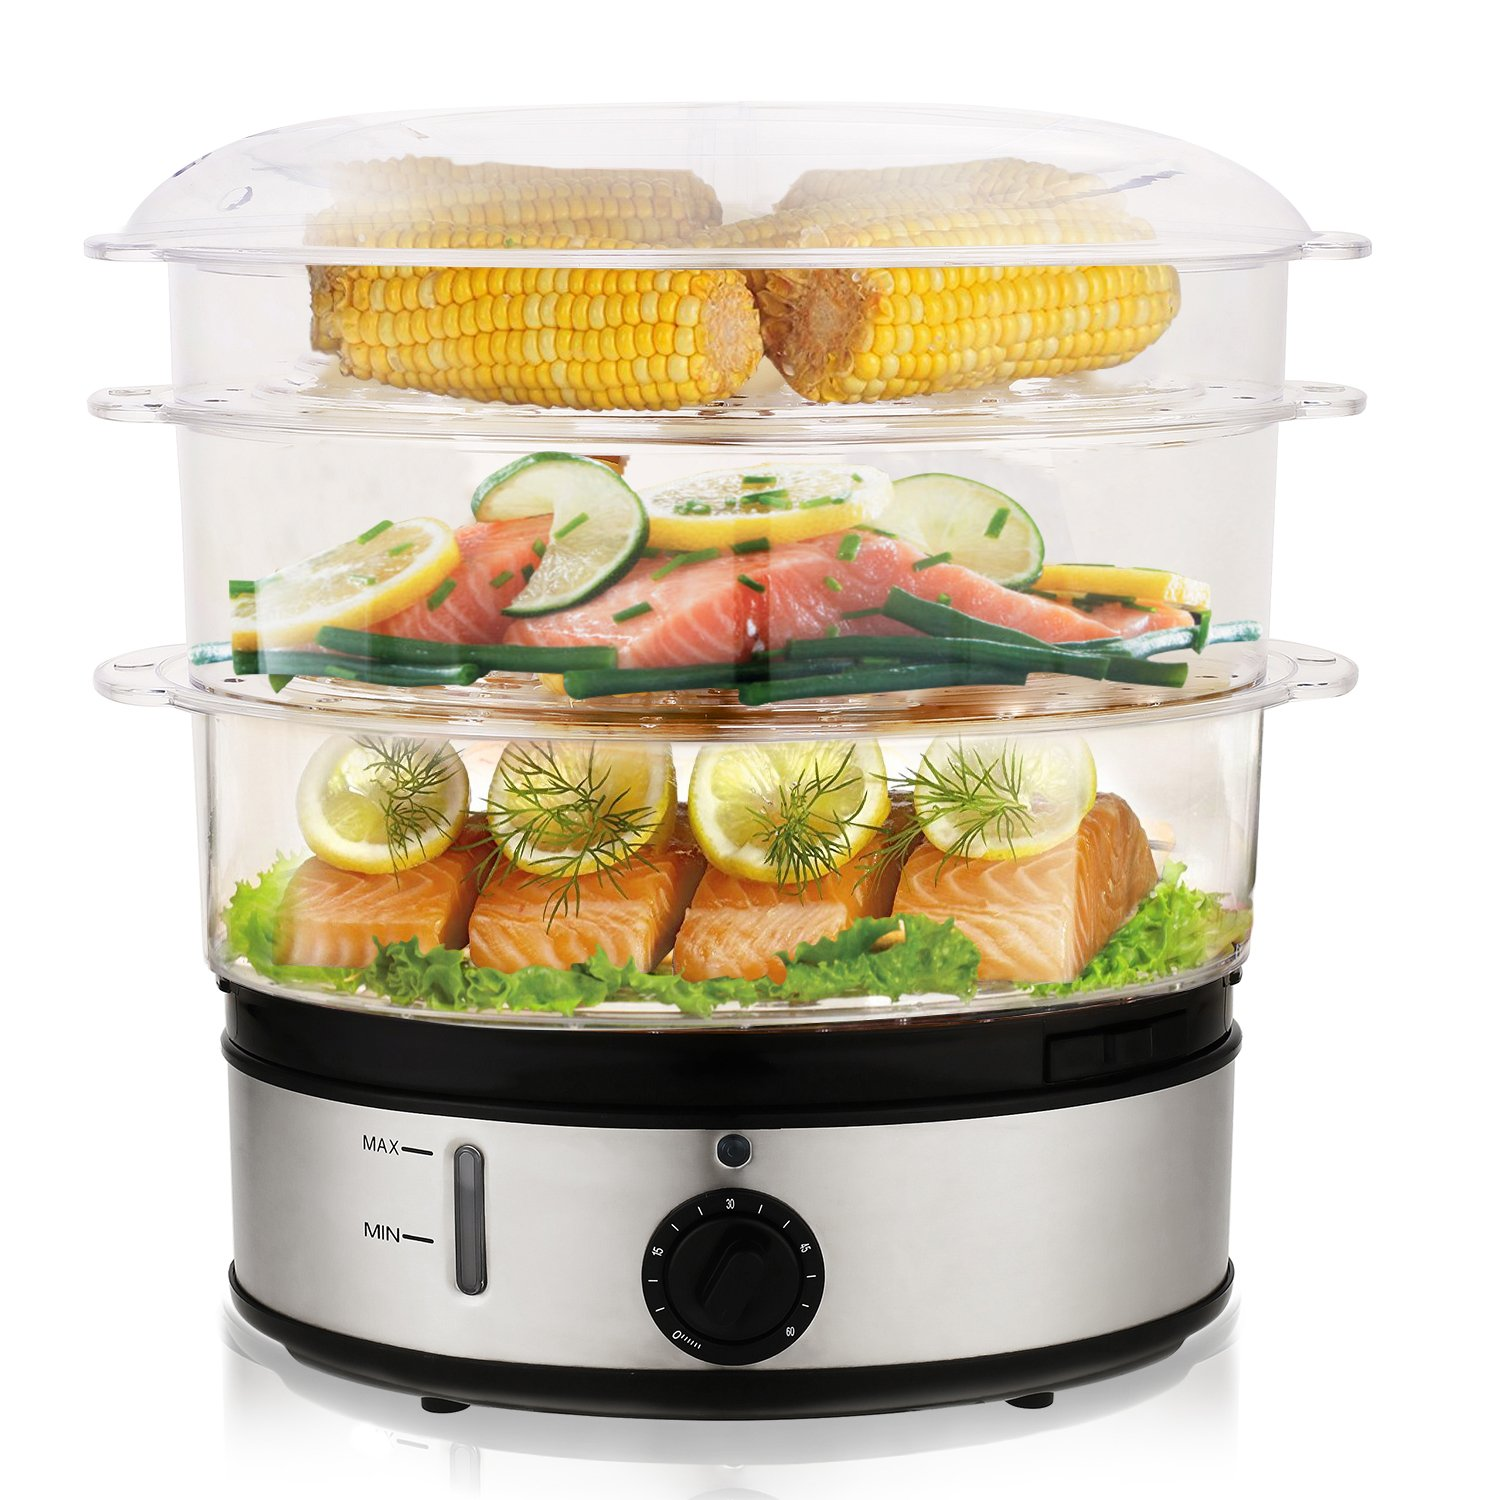 MeyKey Electric Food Steamer with Timer, 9.5 Quart 3-Tier 800W Fast Heat-up for Meat, Vegetable, Egg and Rice, Stainless Steel